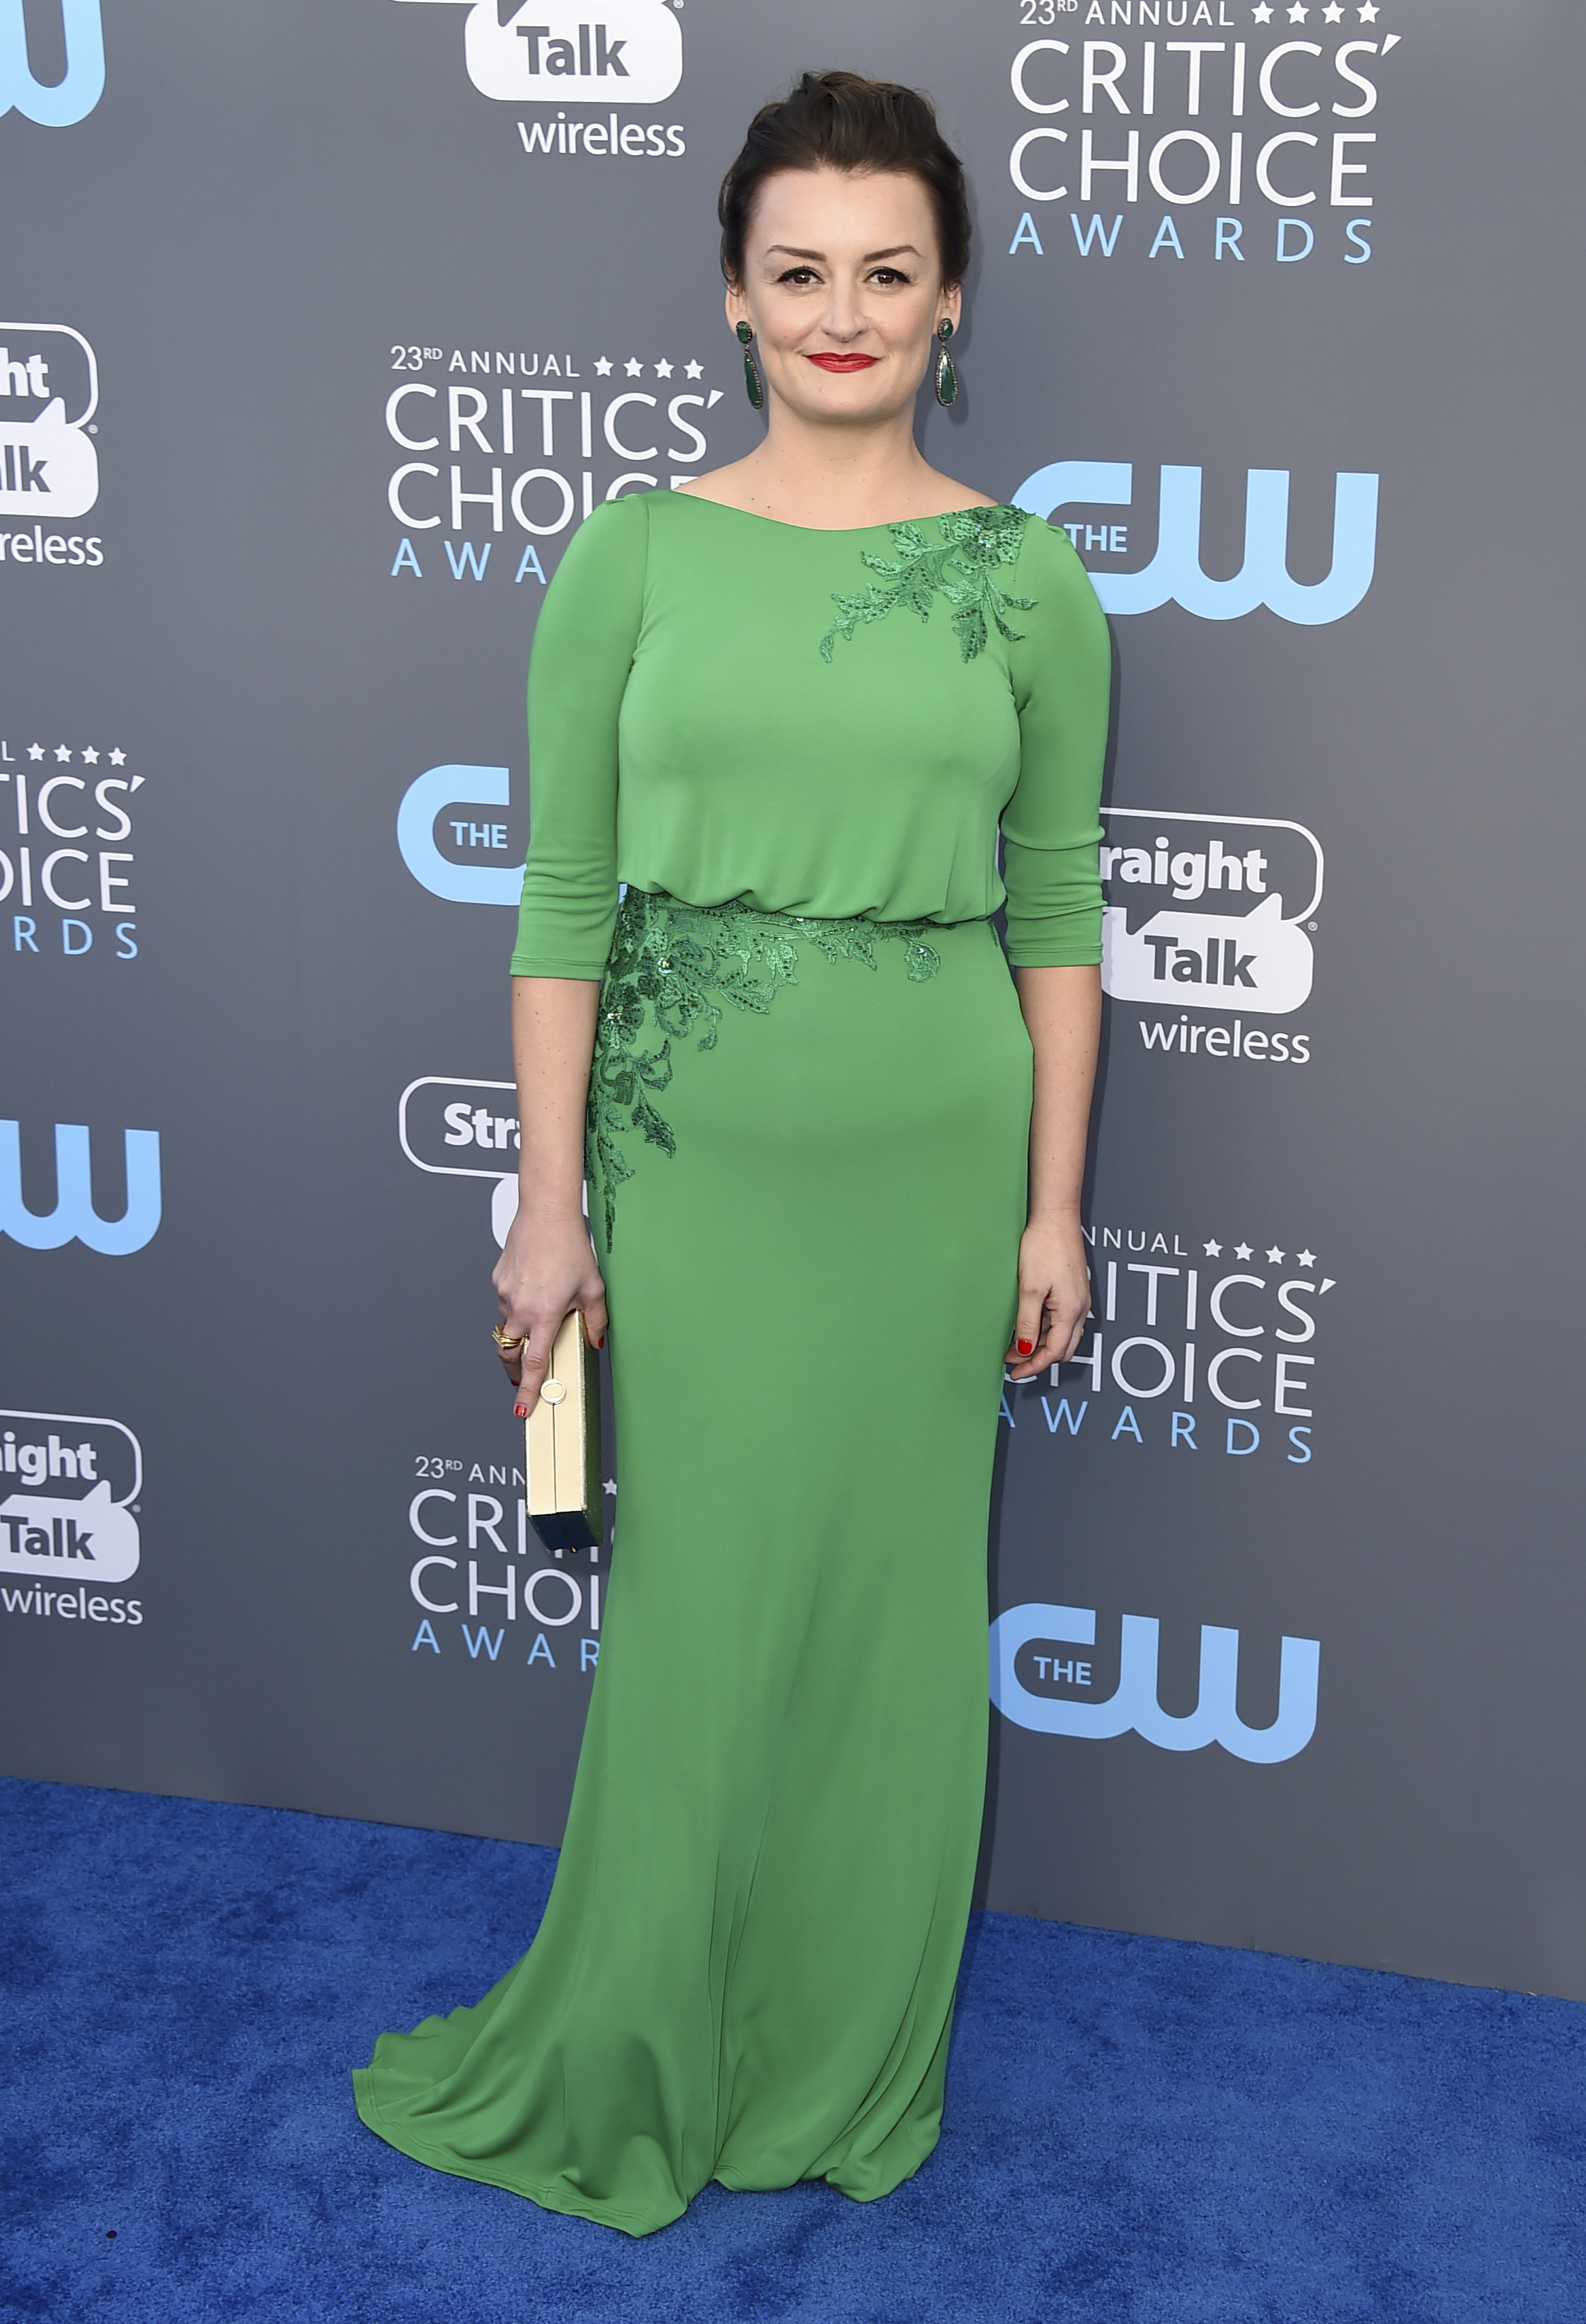 <div class='meta'><div class='origin-logo' data-origin='AP'></div><span class='caption-text' data-credit='Jordan Strauss/Invision/AP'>Alison Wright arrives at the 23rd annual Critics' Choice Awards at the Barker Hangar on Thursday, Jan. 11, 2018, in Santa Monica, Calif.</span></div>